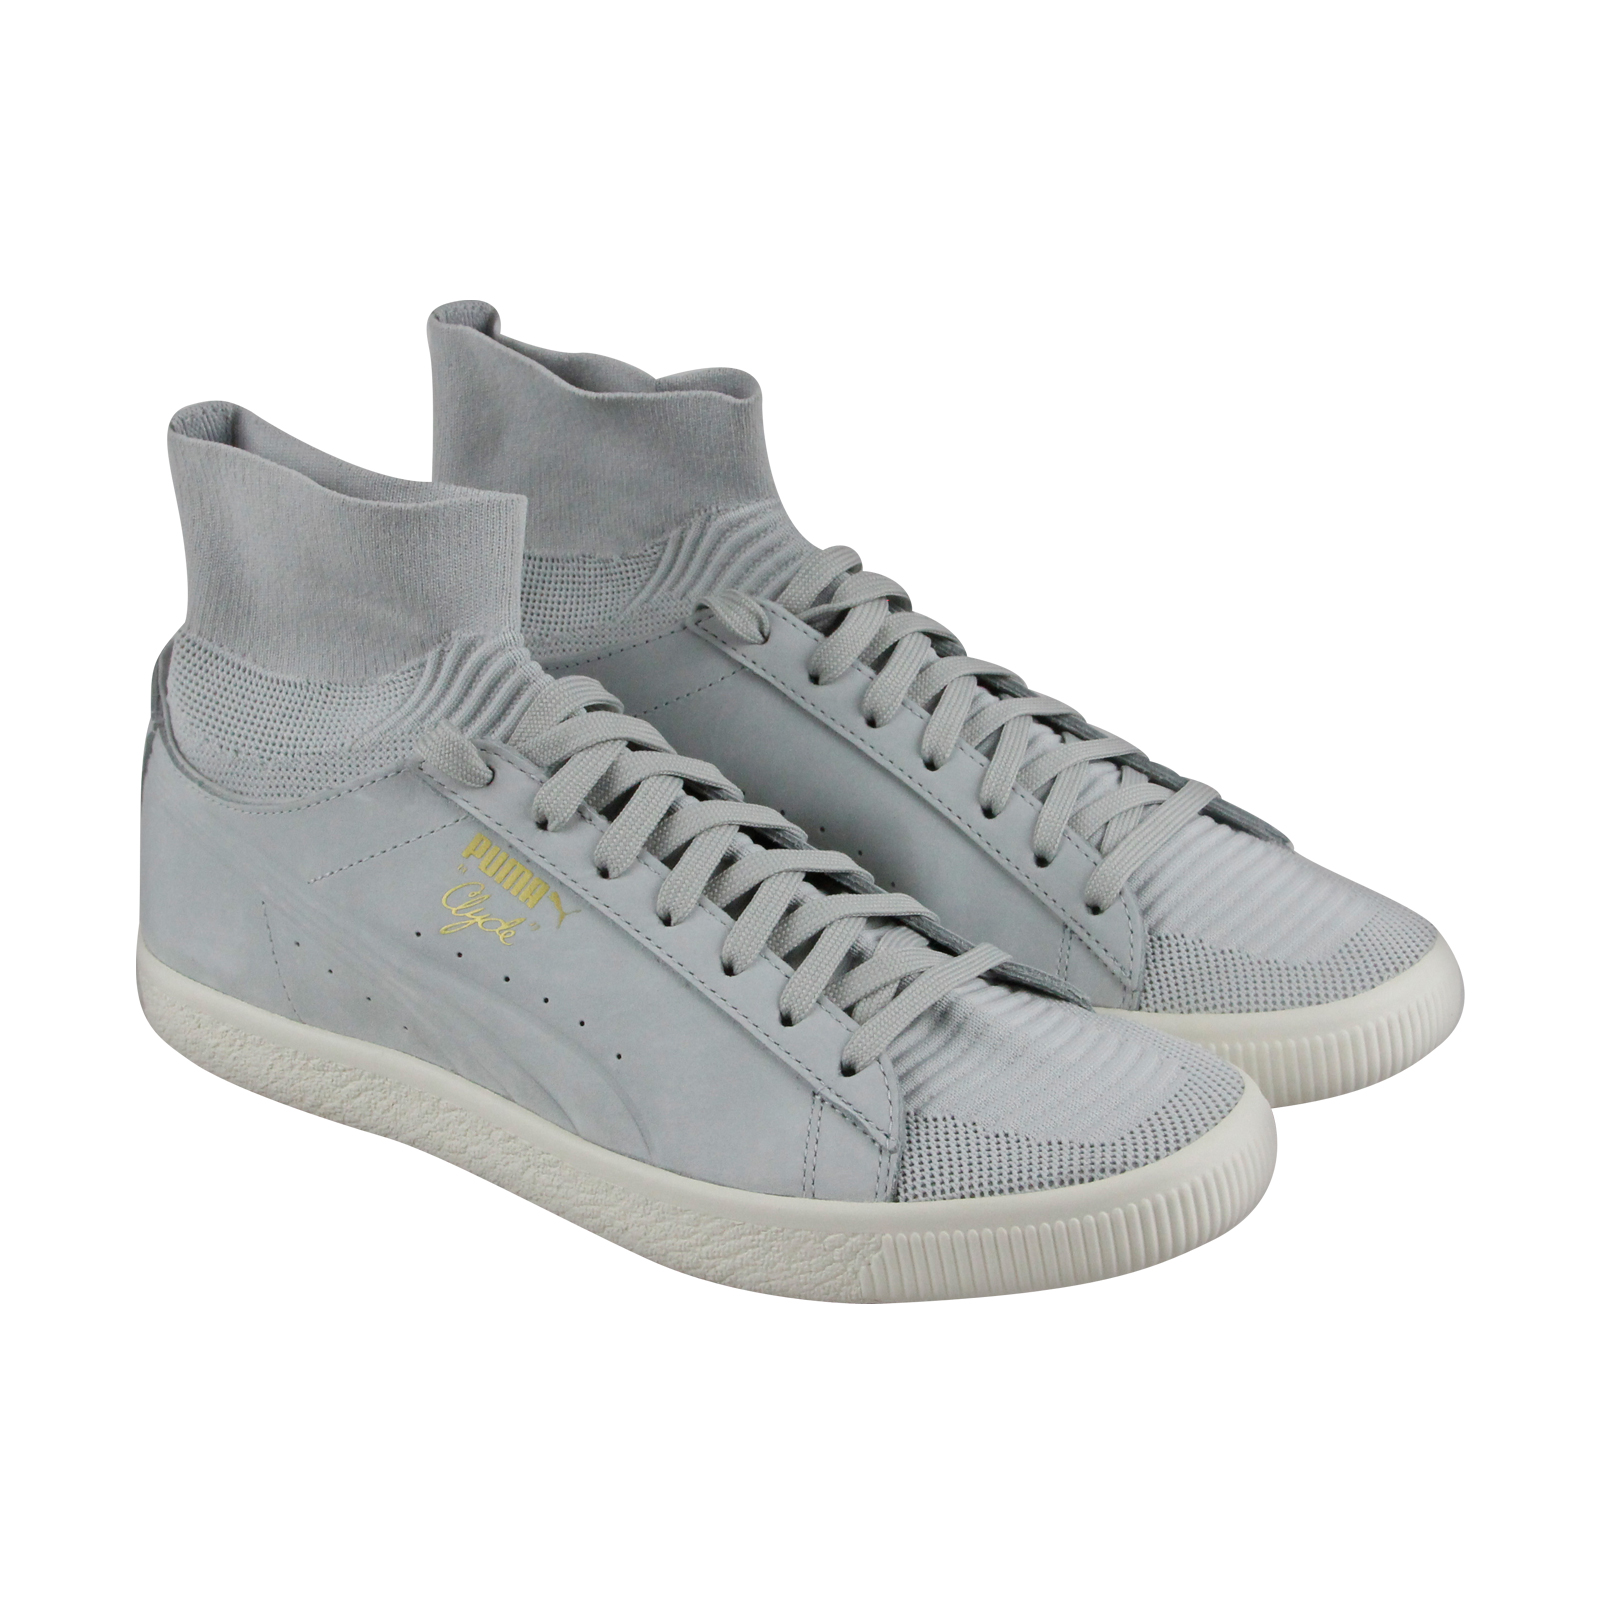 Puma Clyde Sock Select Mens Gray Leather & Textile Athletic Training Shoes